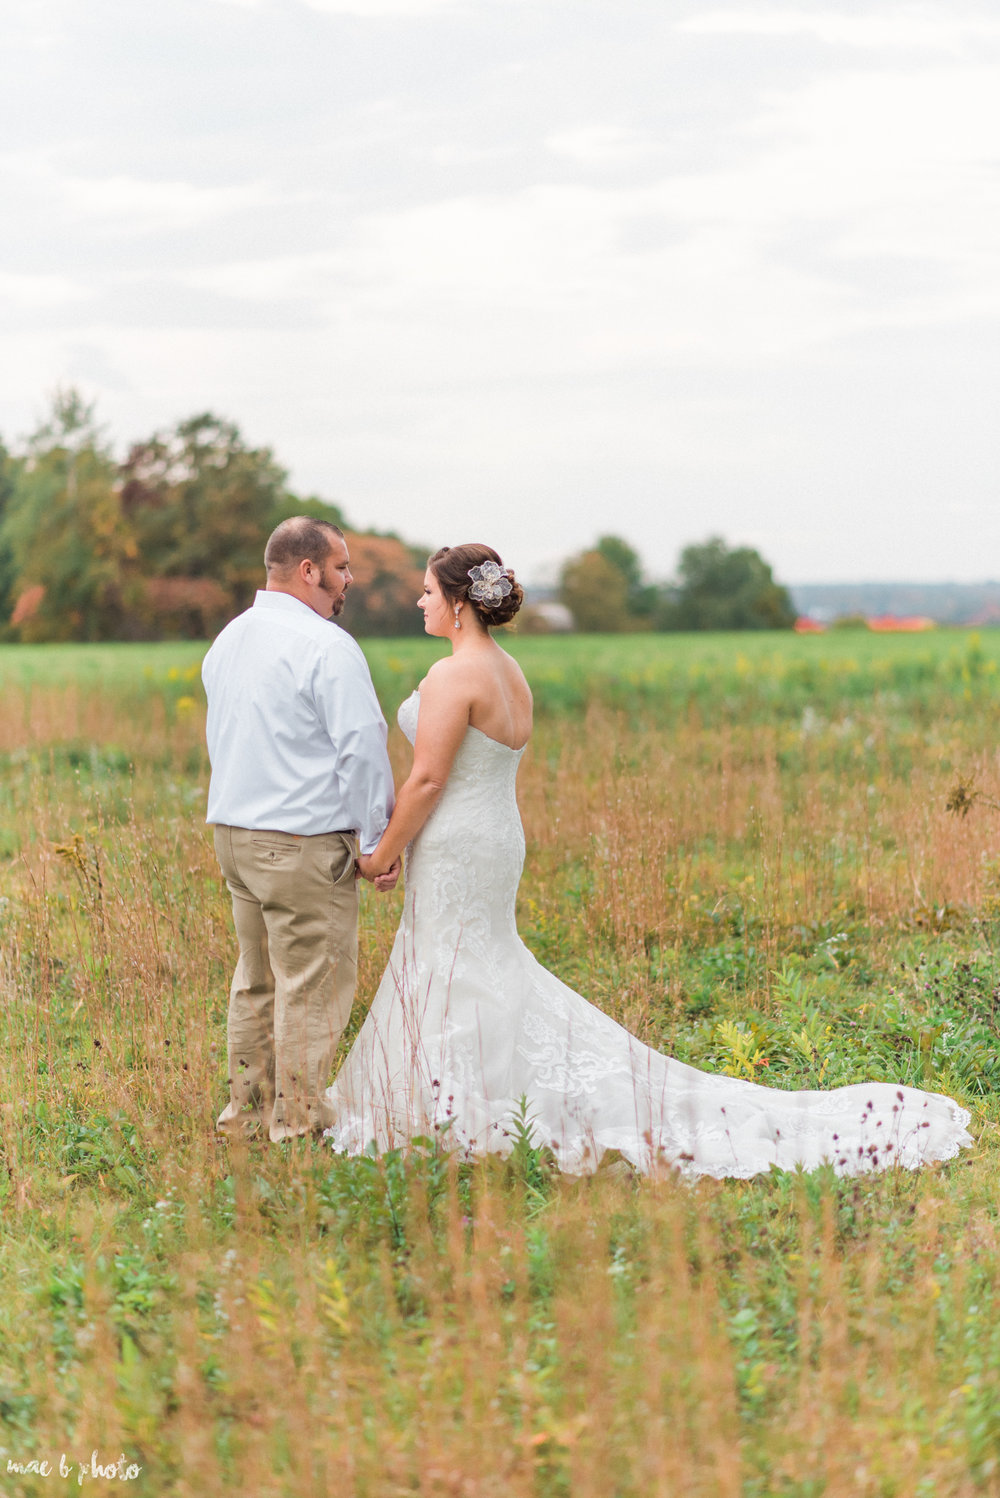 Sarah & Dustin's Rustic Chic Barn Wedding at Hartford Hill Winery in Hartford, Ohio by Mae B Photo-74.jpg